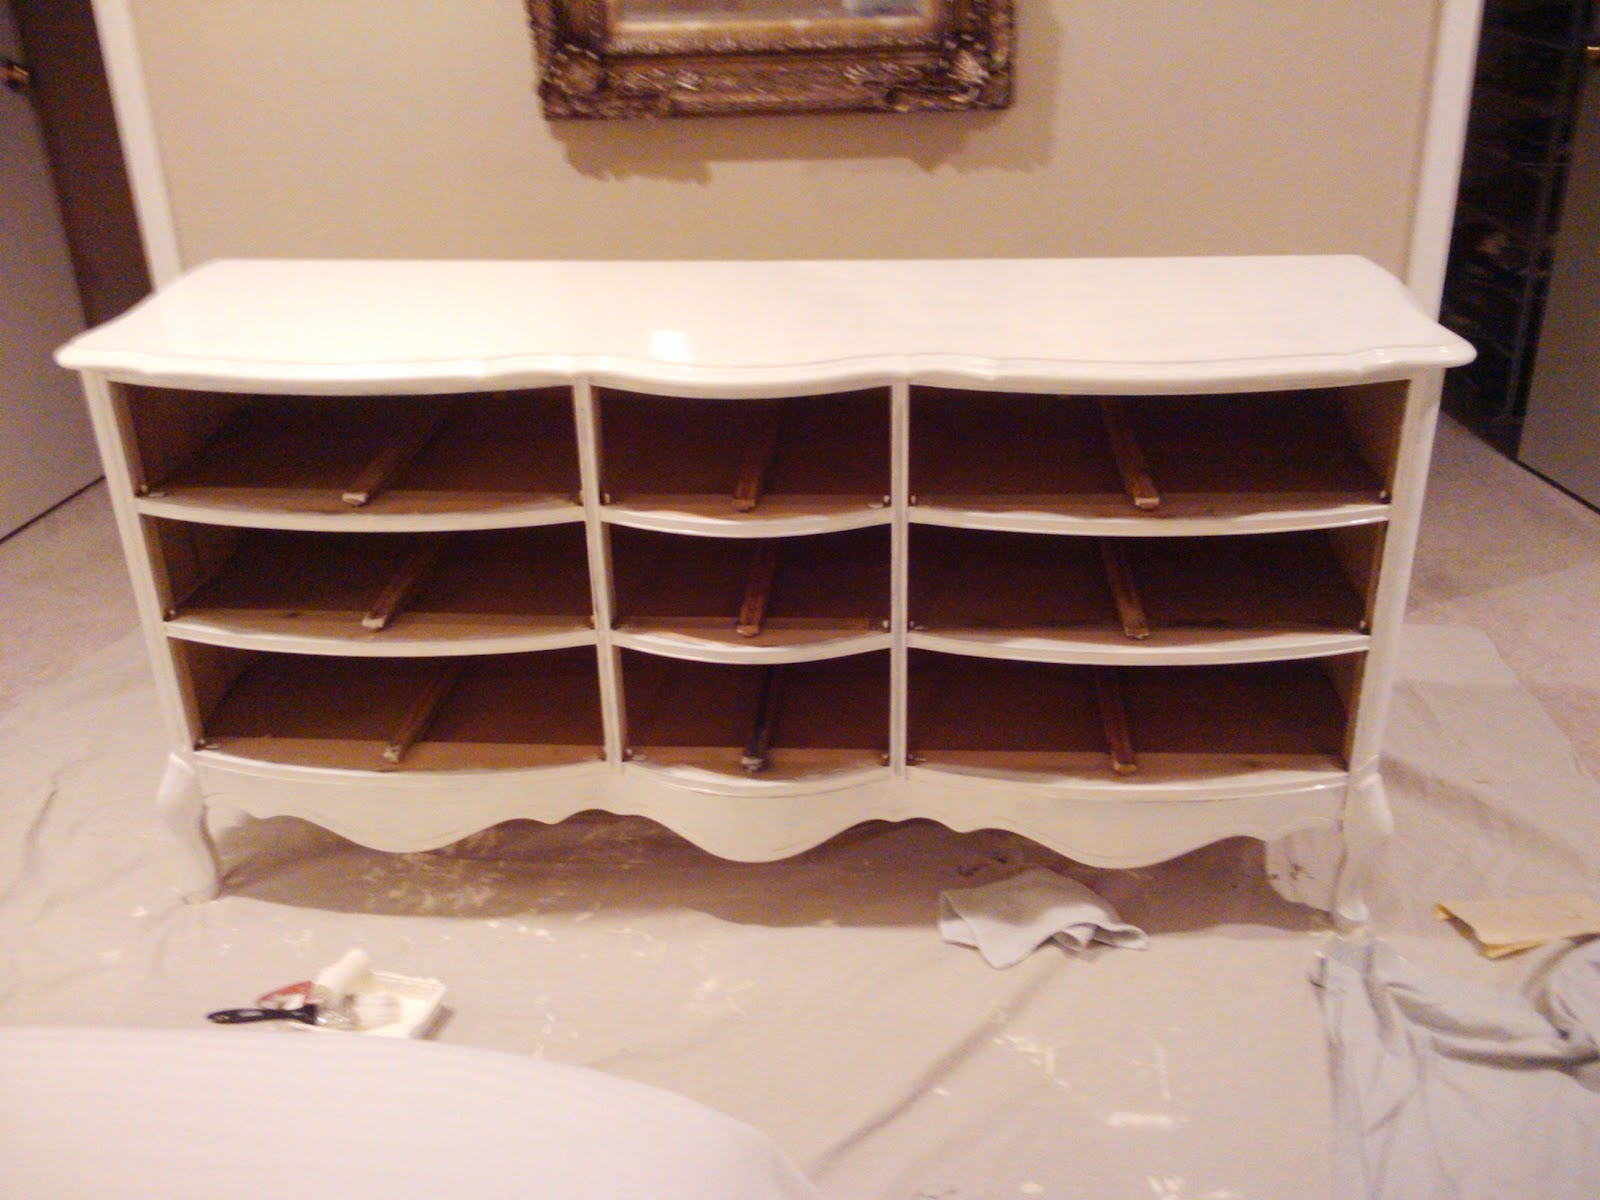 chalk painted bedroom furnitureLiveLoveDIY The Beginners Guide to Painting Furniture